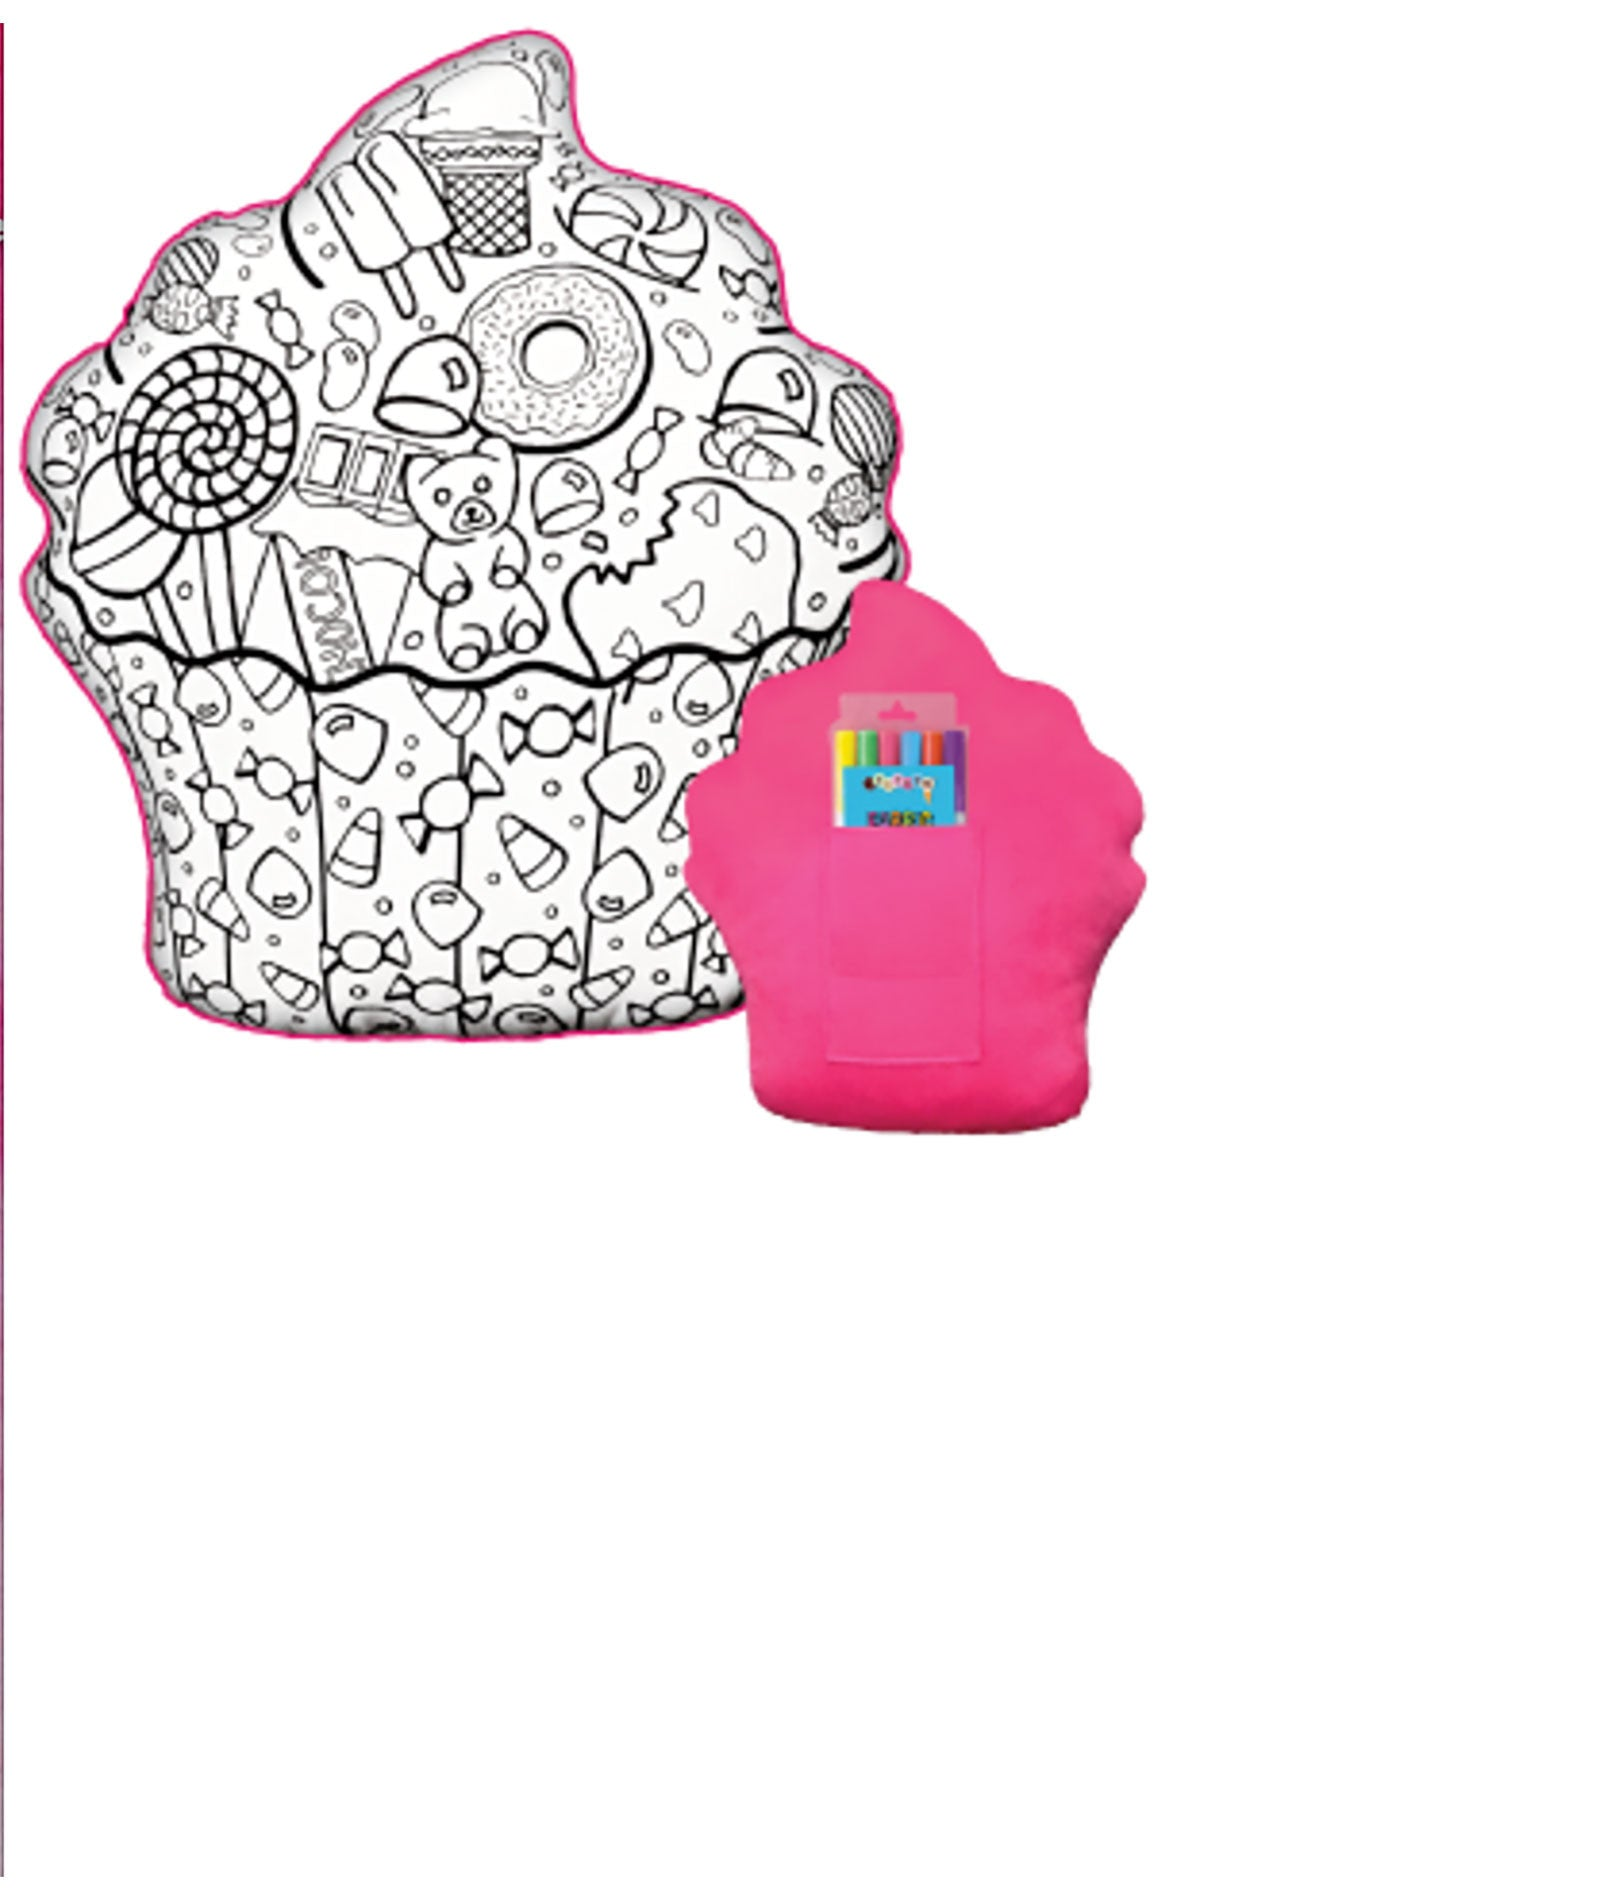 iScream Cupcake Color Me Game Pillow